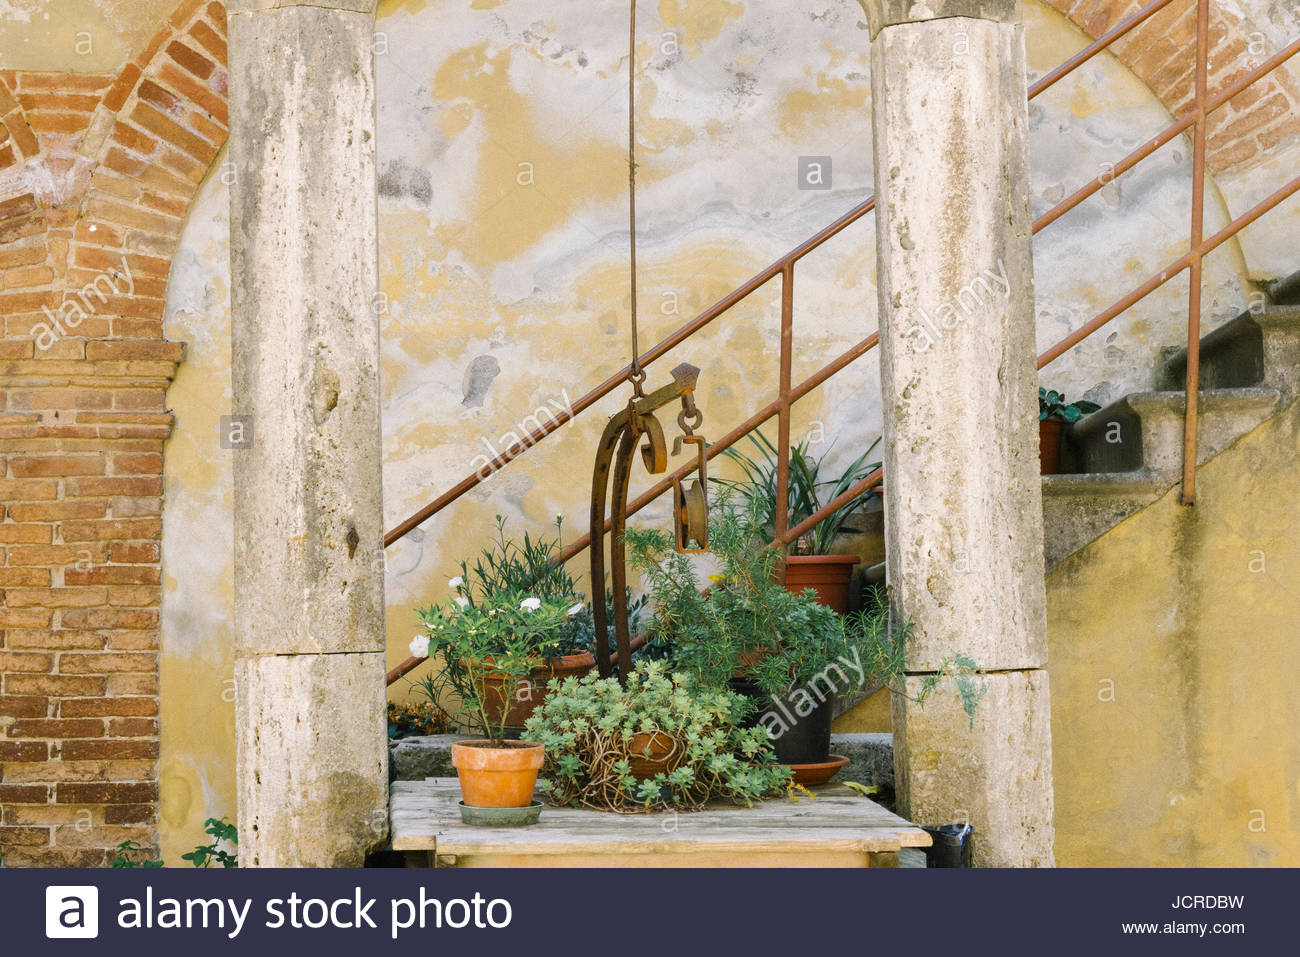 Potted plants next to stairs in San Quirico D'Orcia. - Stock Image